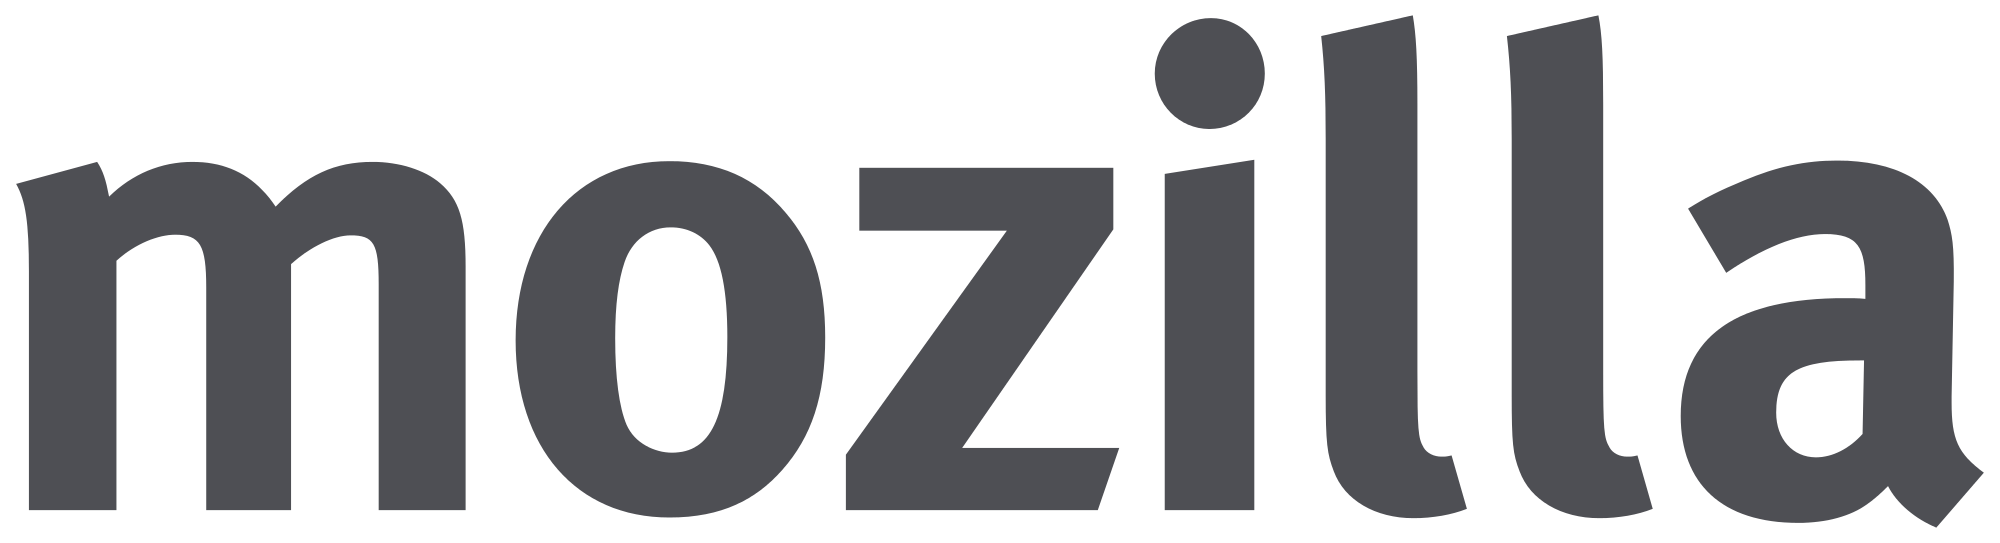 Mdn svg. Mozilla foundation firefox os